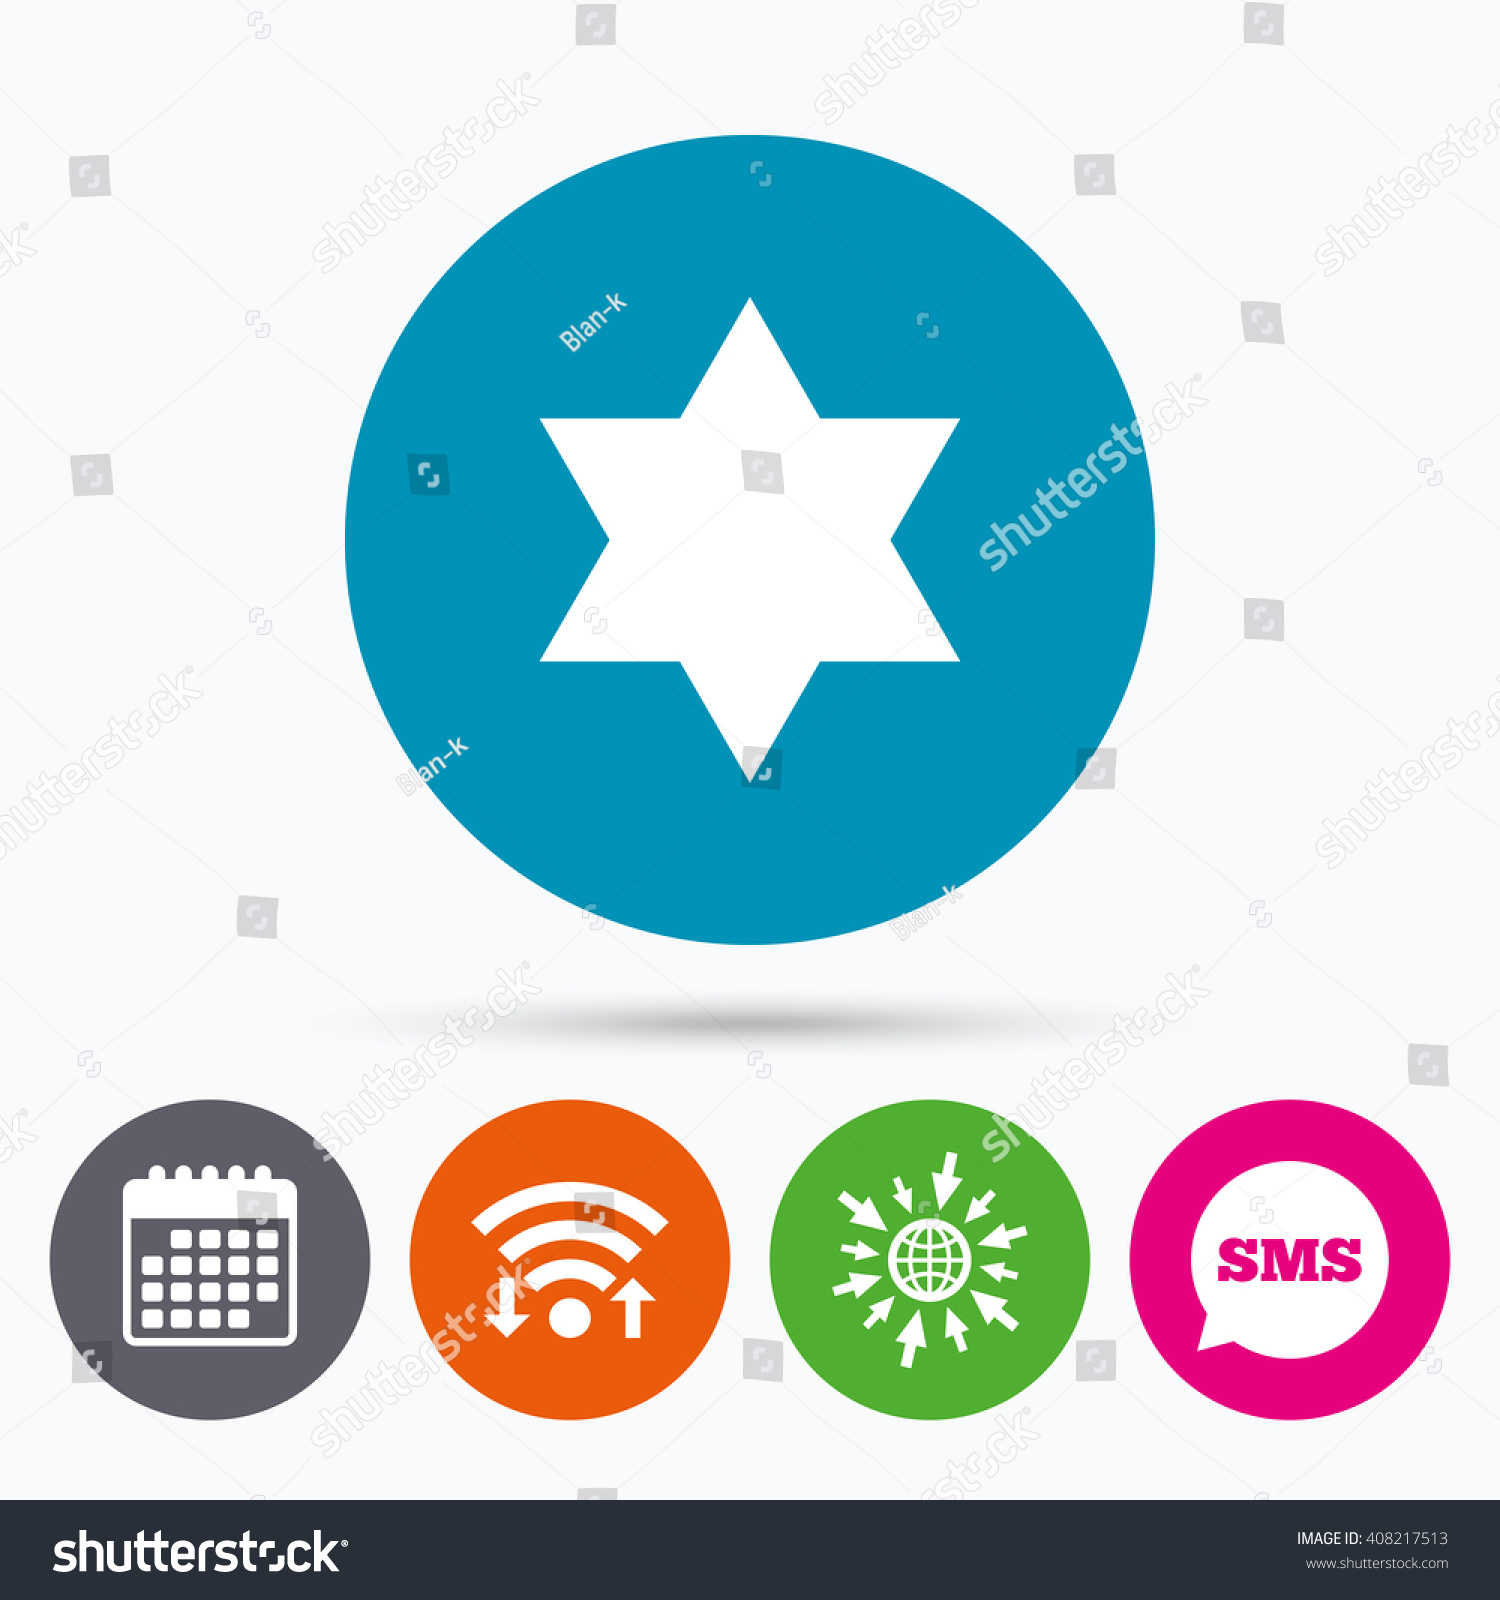 Wifi Sms Calendar Icons Star David Stock Vector 408217513 Shutterstock